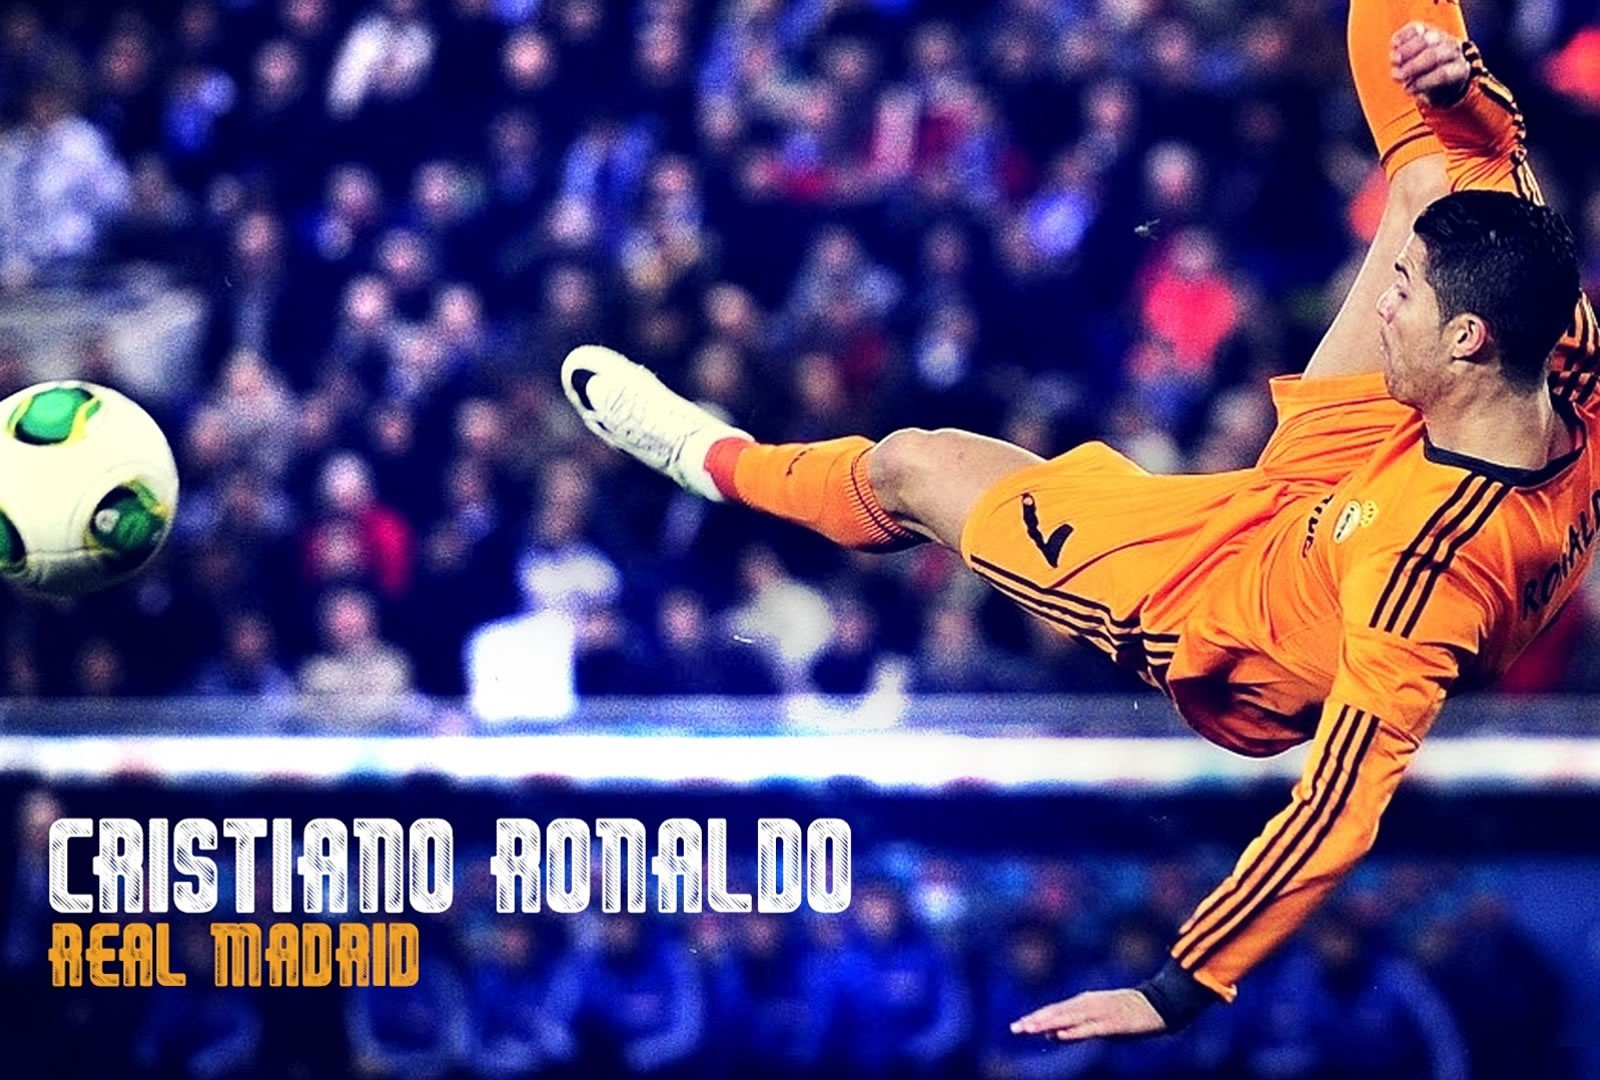 Cristiano Ronaldo bicycle kick wallpaper - Cristiano Ronaldo Wallpapers